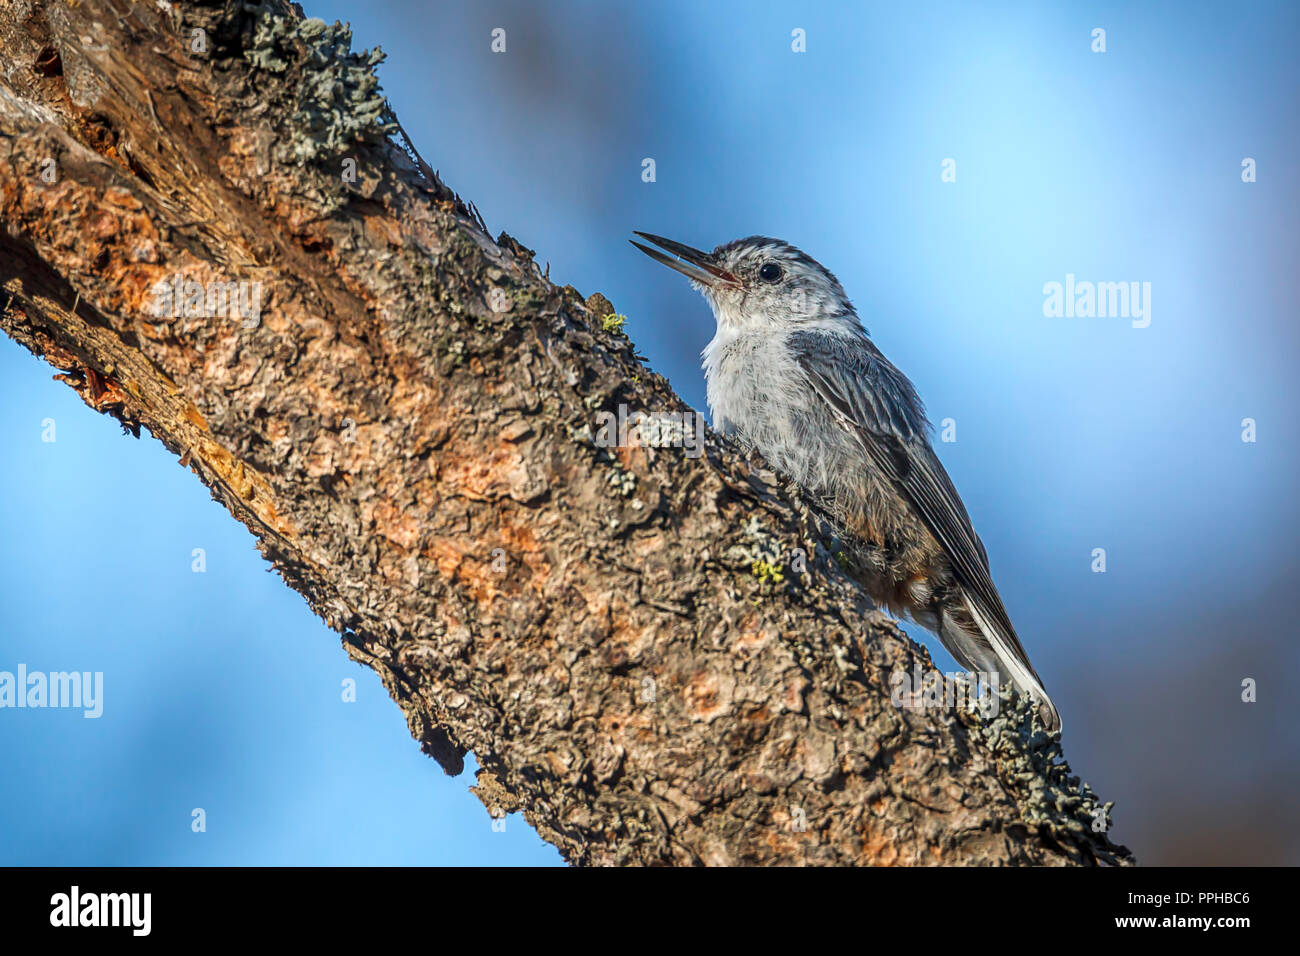 A small nuthatch songbird is perched on a tree branch at Turnbull wildlife refuge in Cheney, Washington. - Stock Image